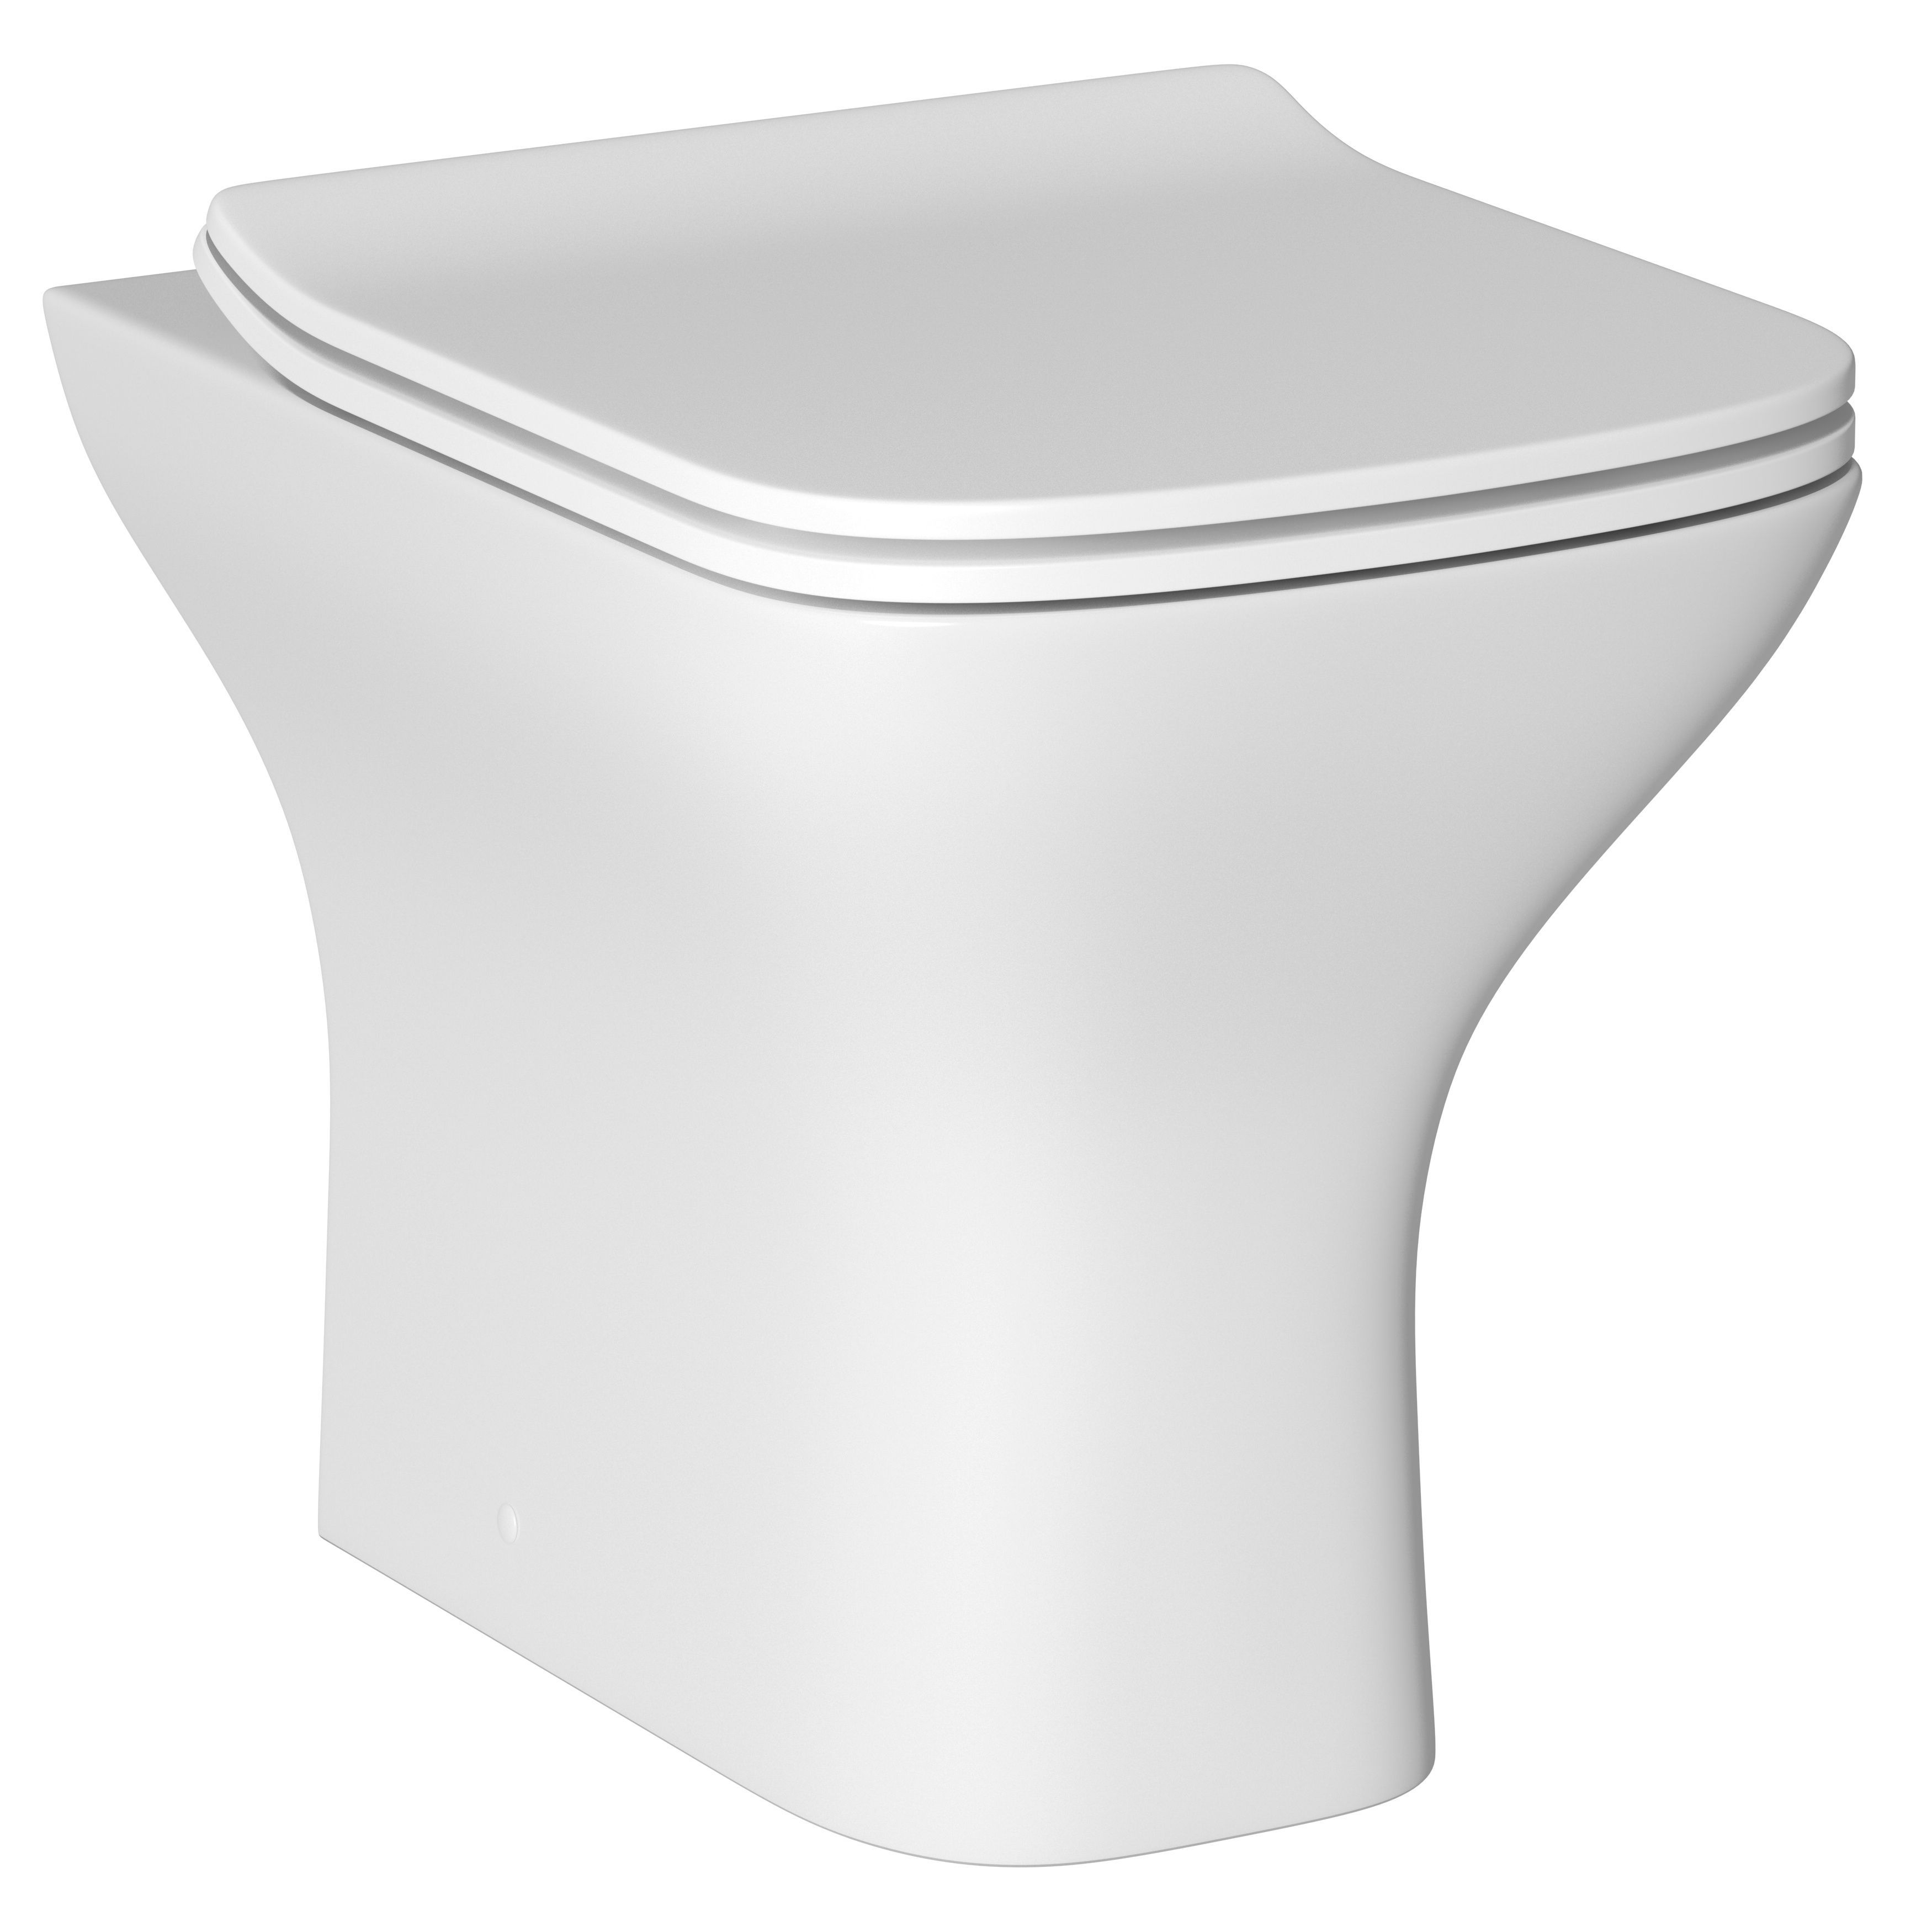 Cooke Lewis Lanzo Contemporary Back To Wall Toilet With Soft Close Seat Departments Diy At B Q